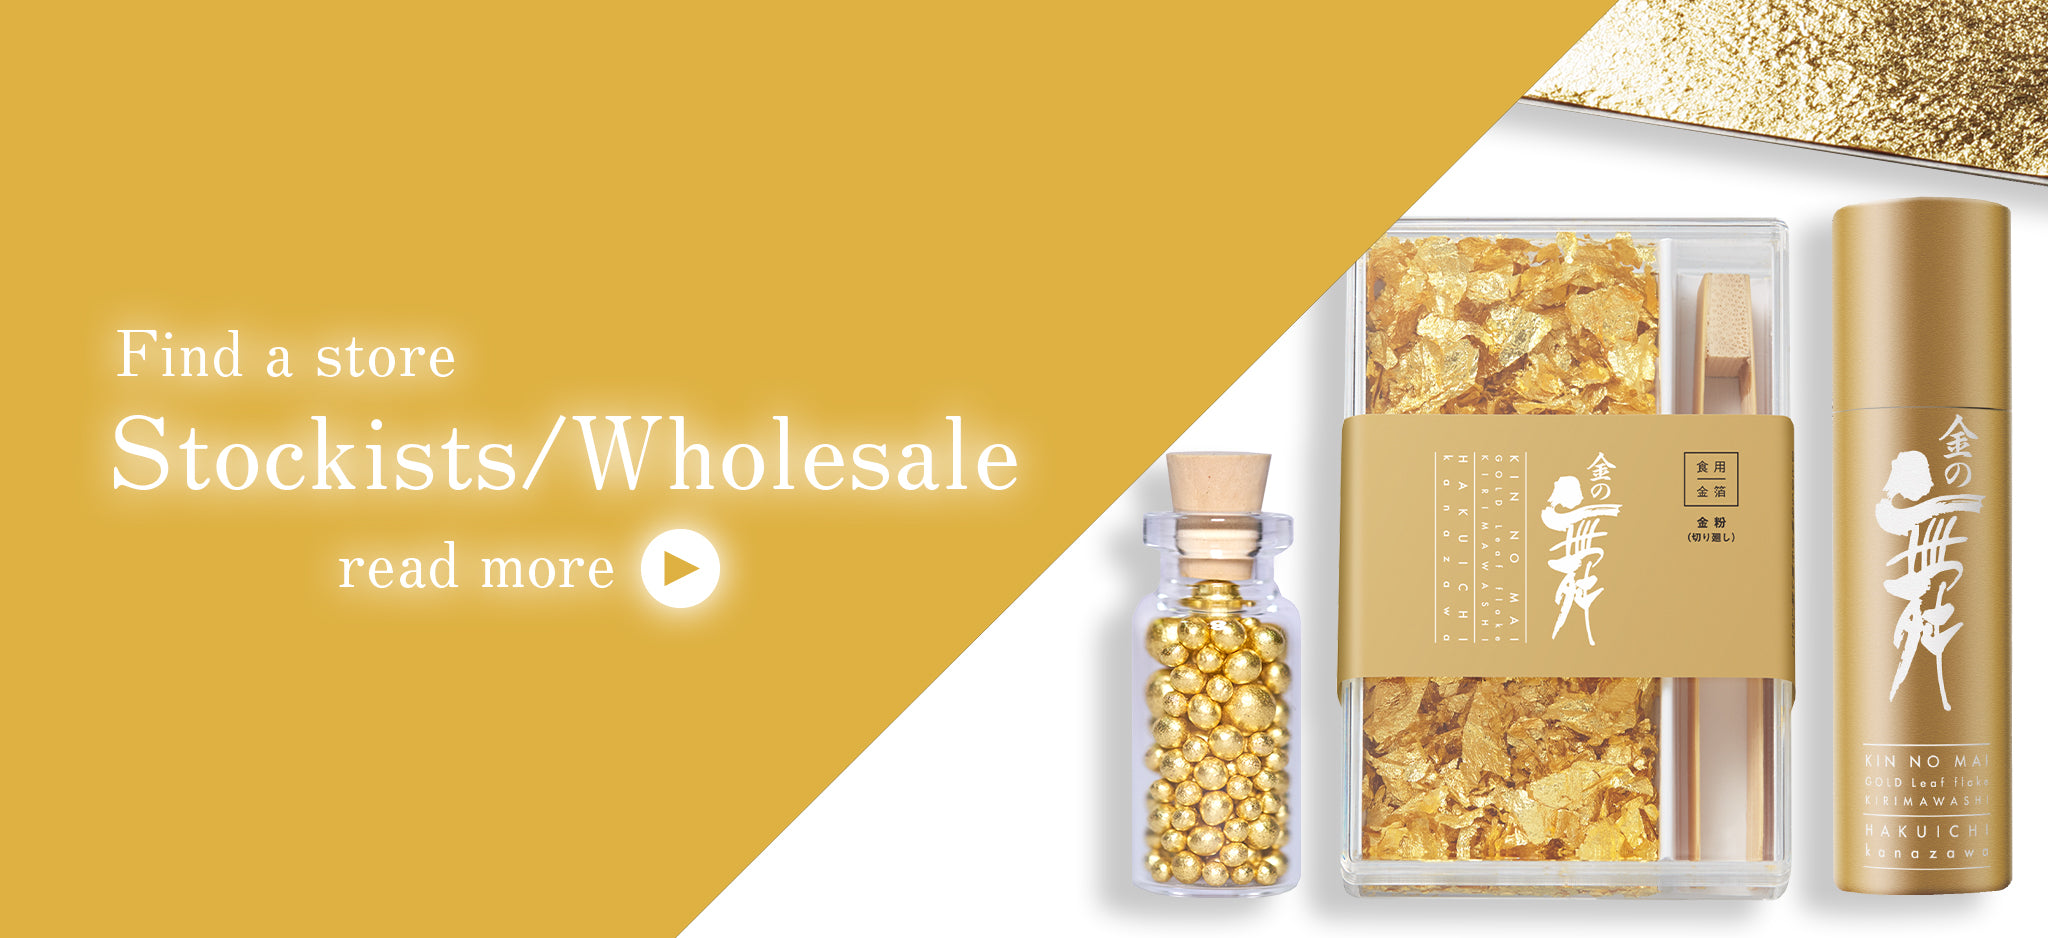 find a store - stockists and wholesale - read more